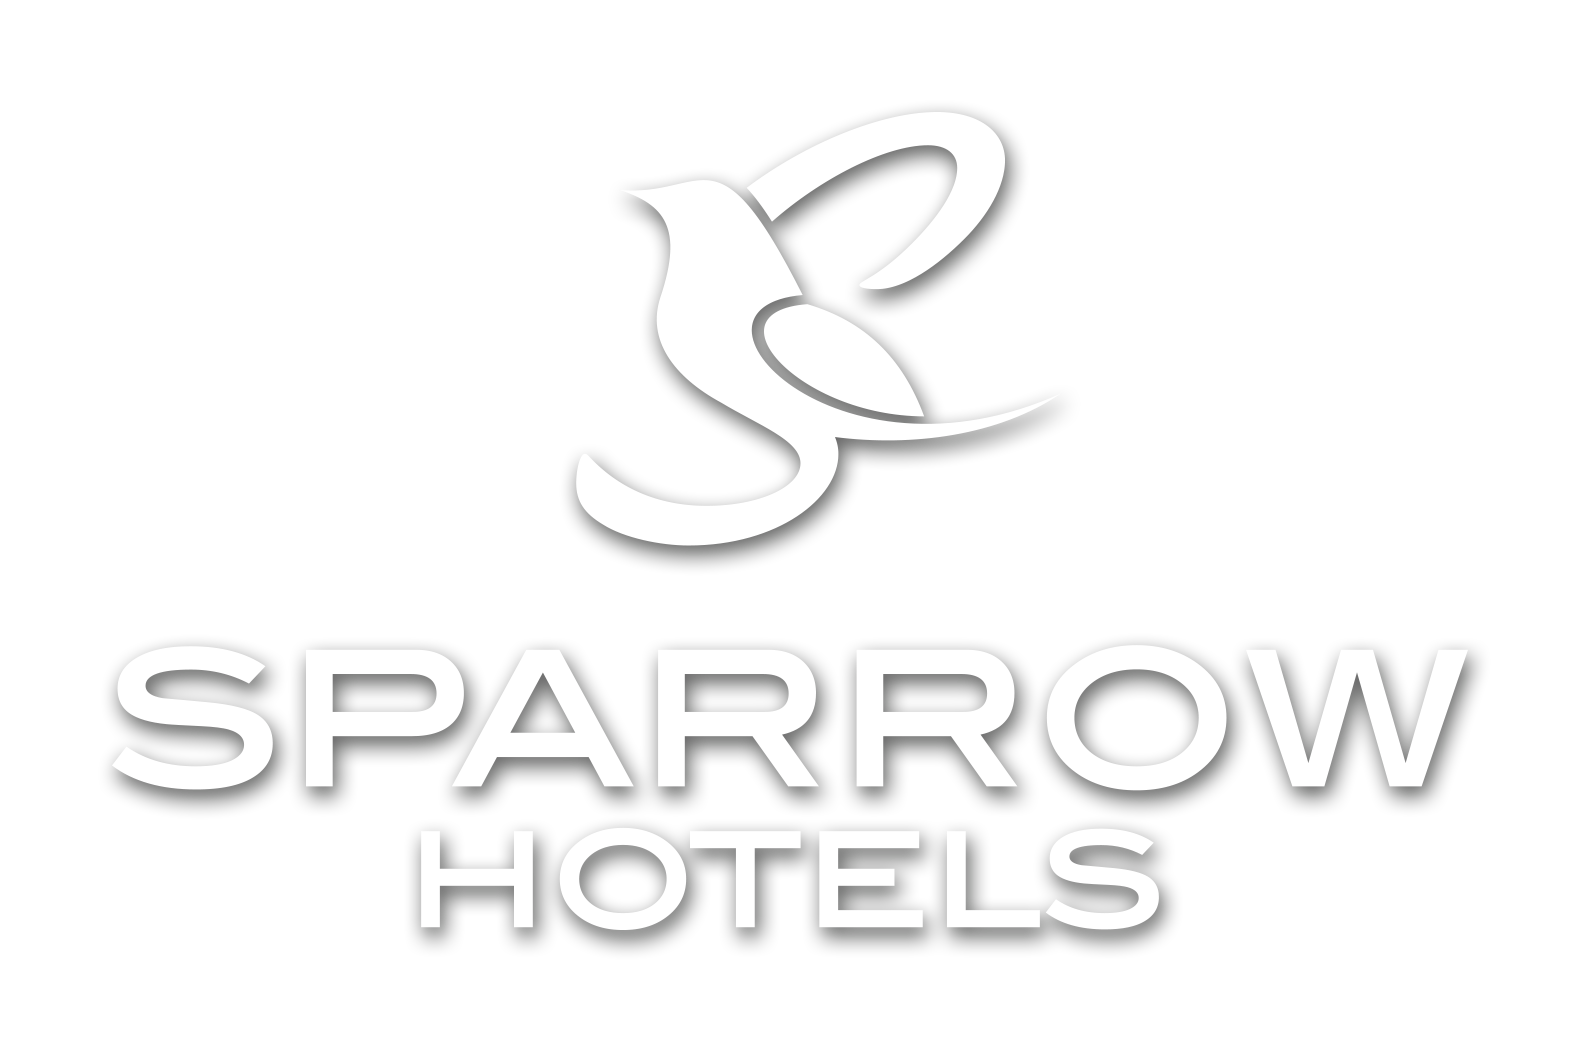 Sparrow Hotels